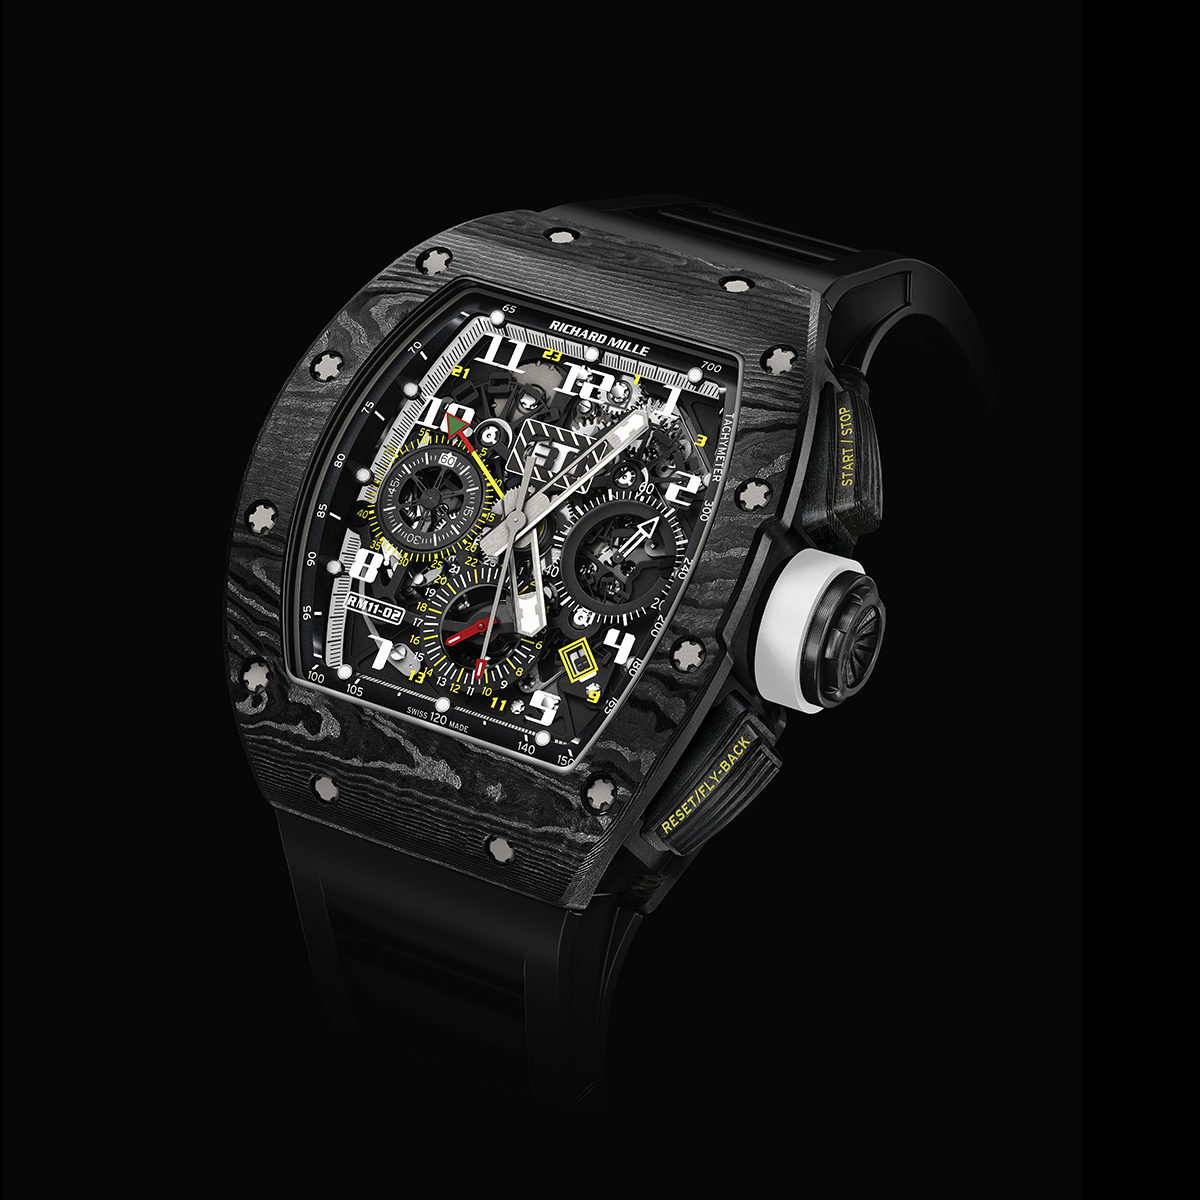 RICHARD MILLE RM 11-02 Shanghai Replica Watch